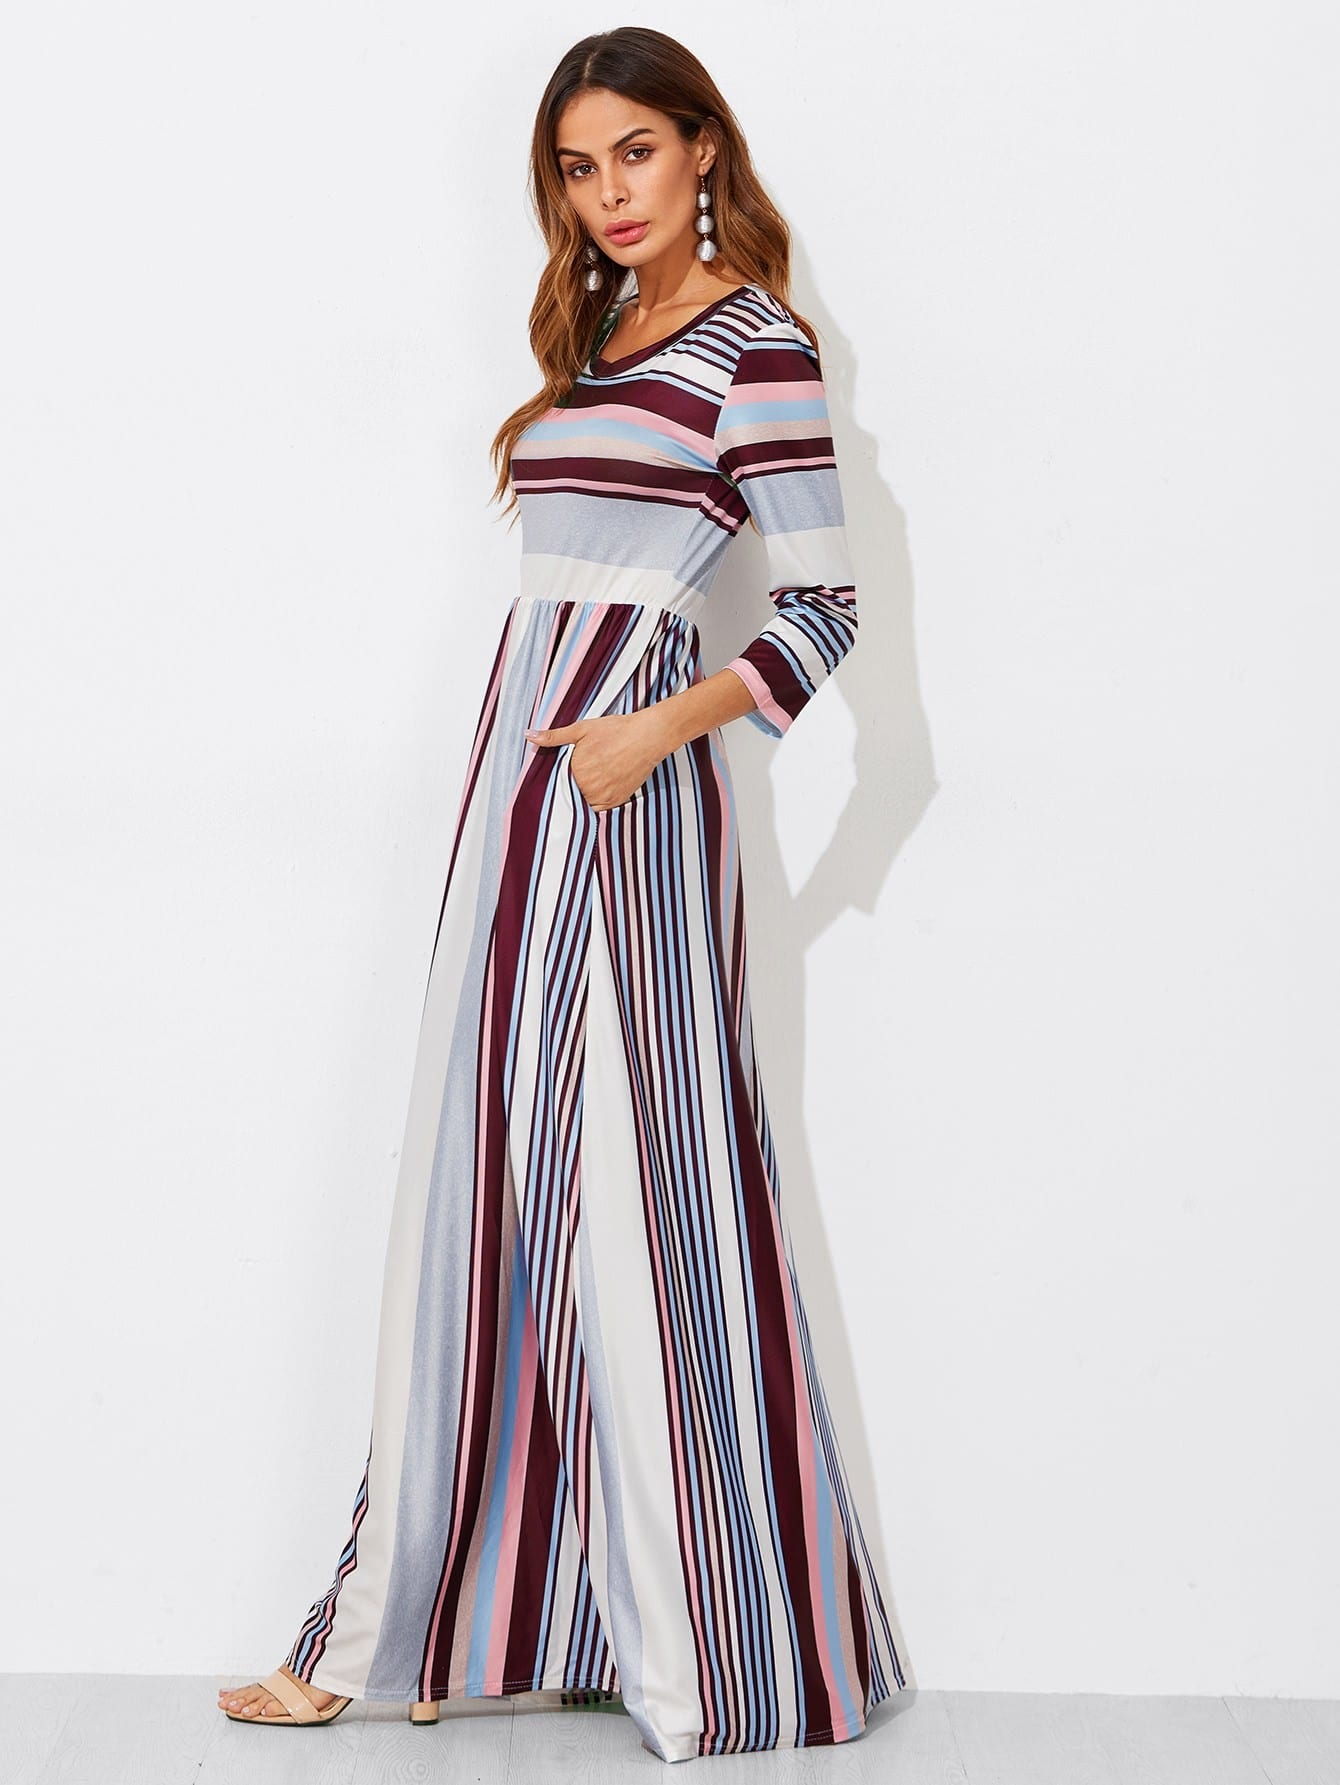 Colorful Striped High Waist Dress colorful striped high waist dress